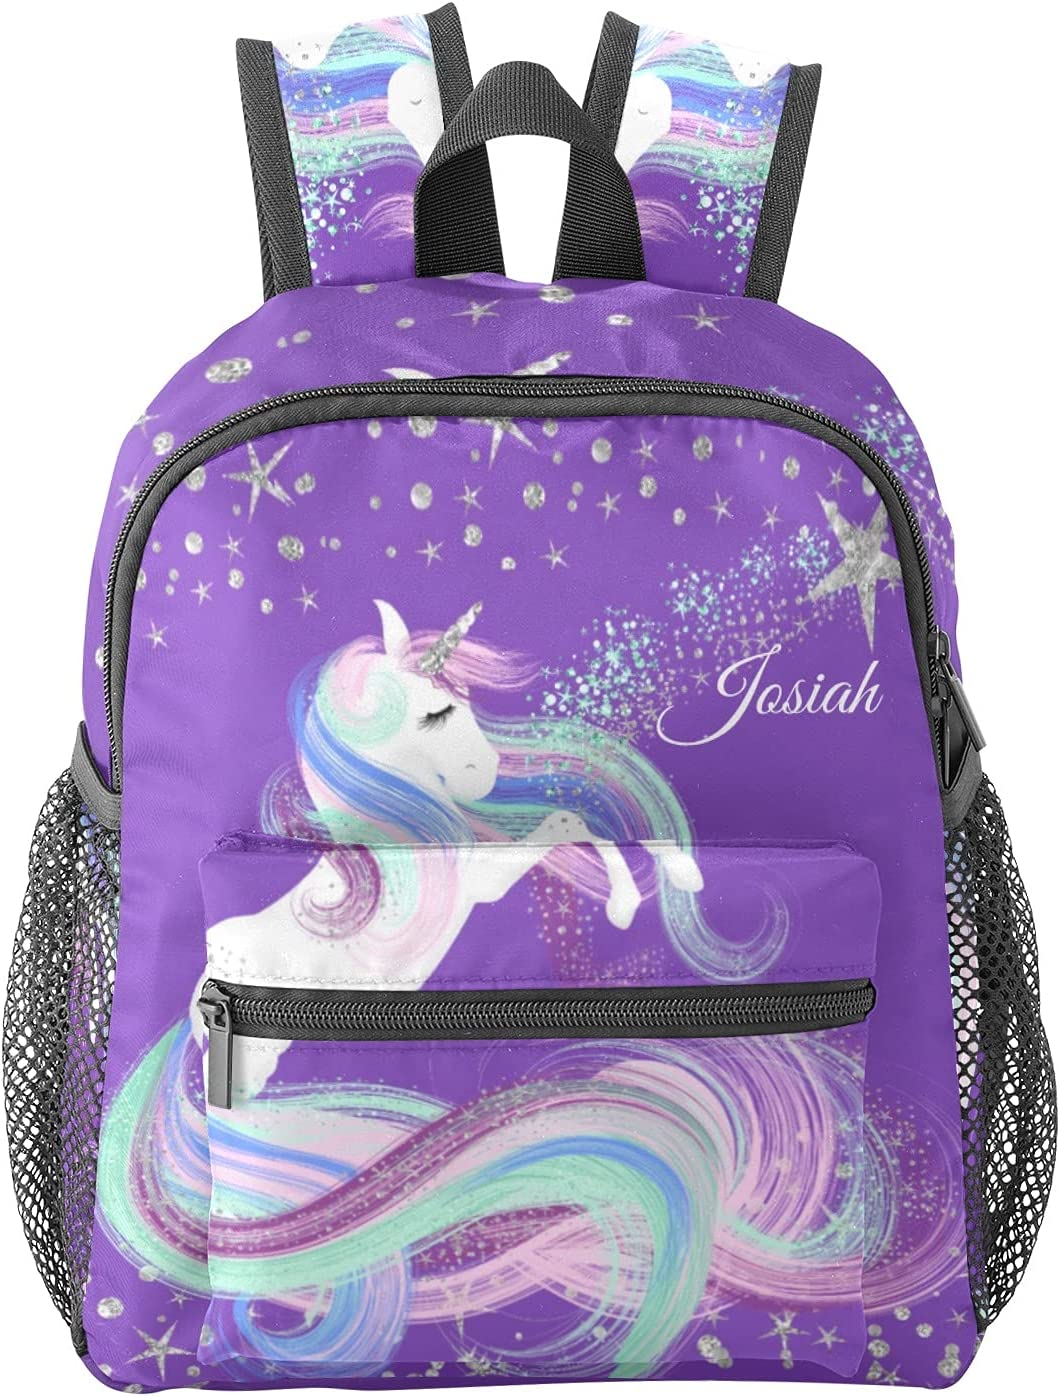 Personalized Starry Stars Unicorn Max 52% OFF School Kid Outlet sale feature Kindergart Backpack